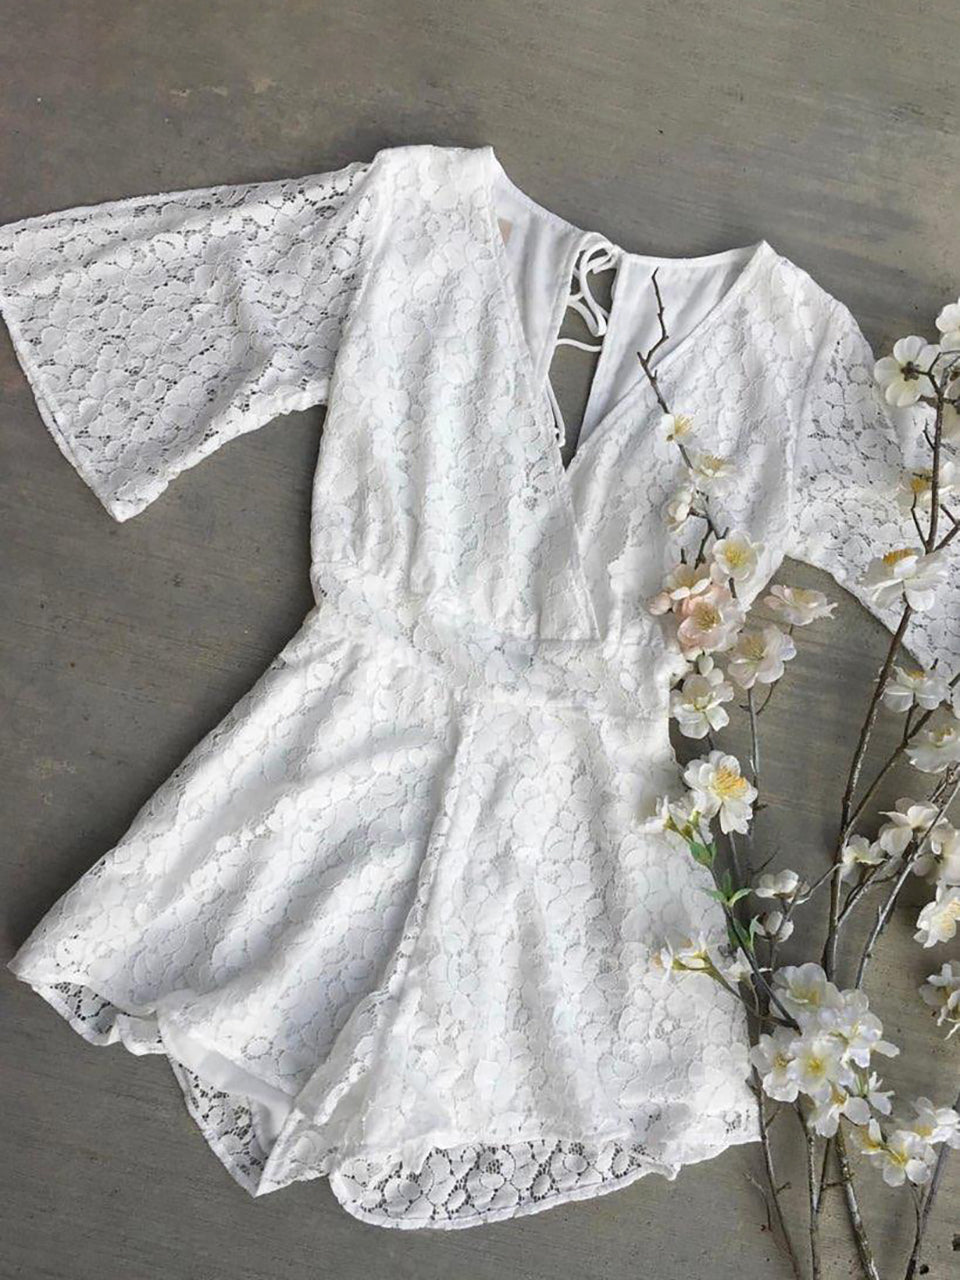 LACE NEW YOU ROMPER - NEW NEW